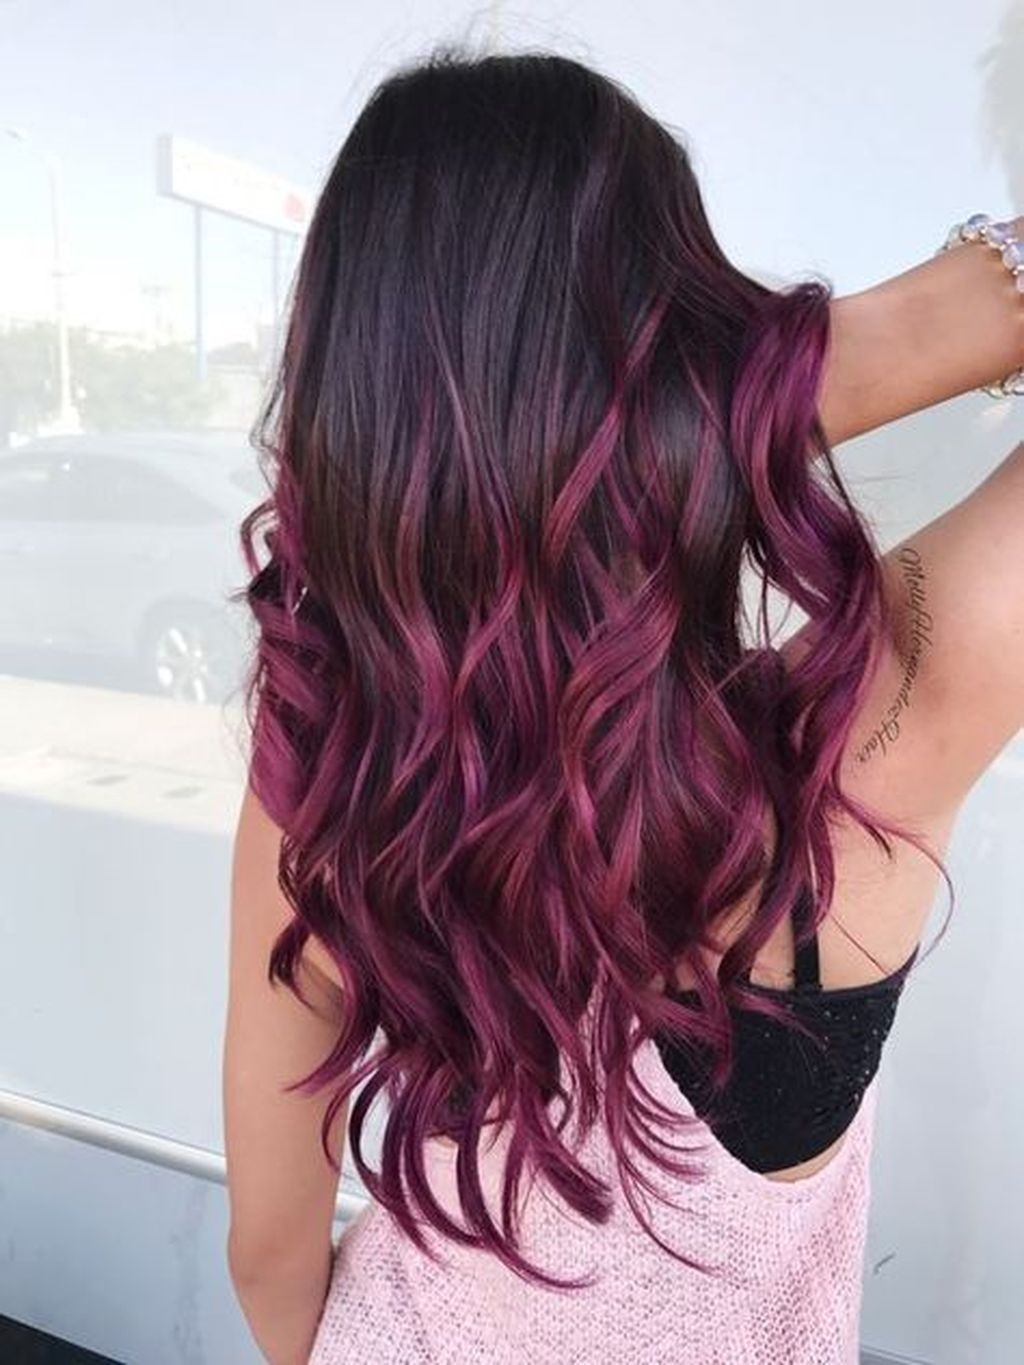 So Long Summer The Leaves Are Changing Thus Should Your Hair Changing Your Hair Color To Catch The Excel Brunette Hair Color Magenta Hair Purple Ombre Hair